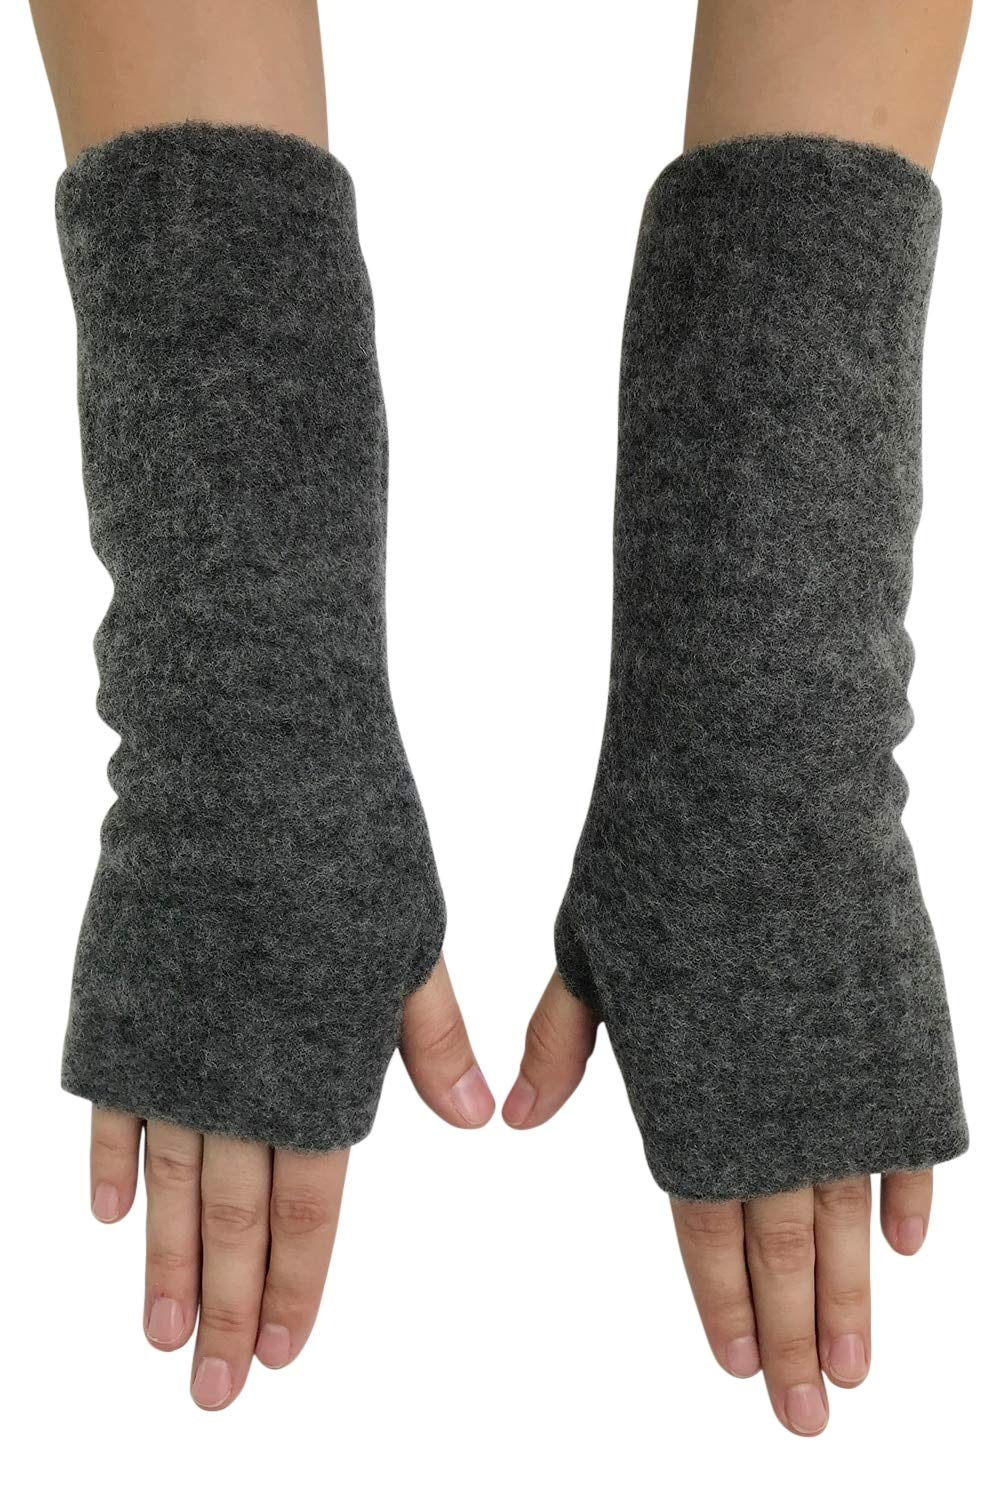 Women's Arm Warmer Sleeves - Fingerless Gloves with Thumb Holes, Pure Merino Wool Fleece (Grey Melange)